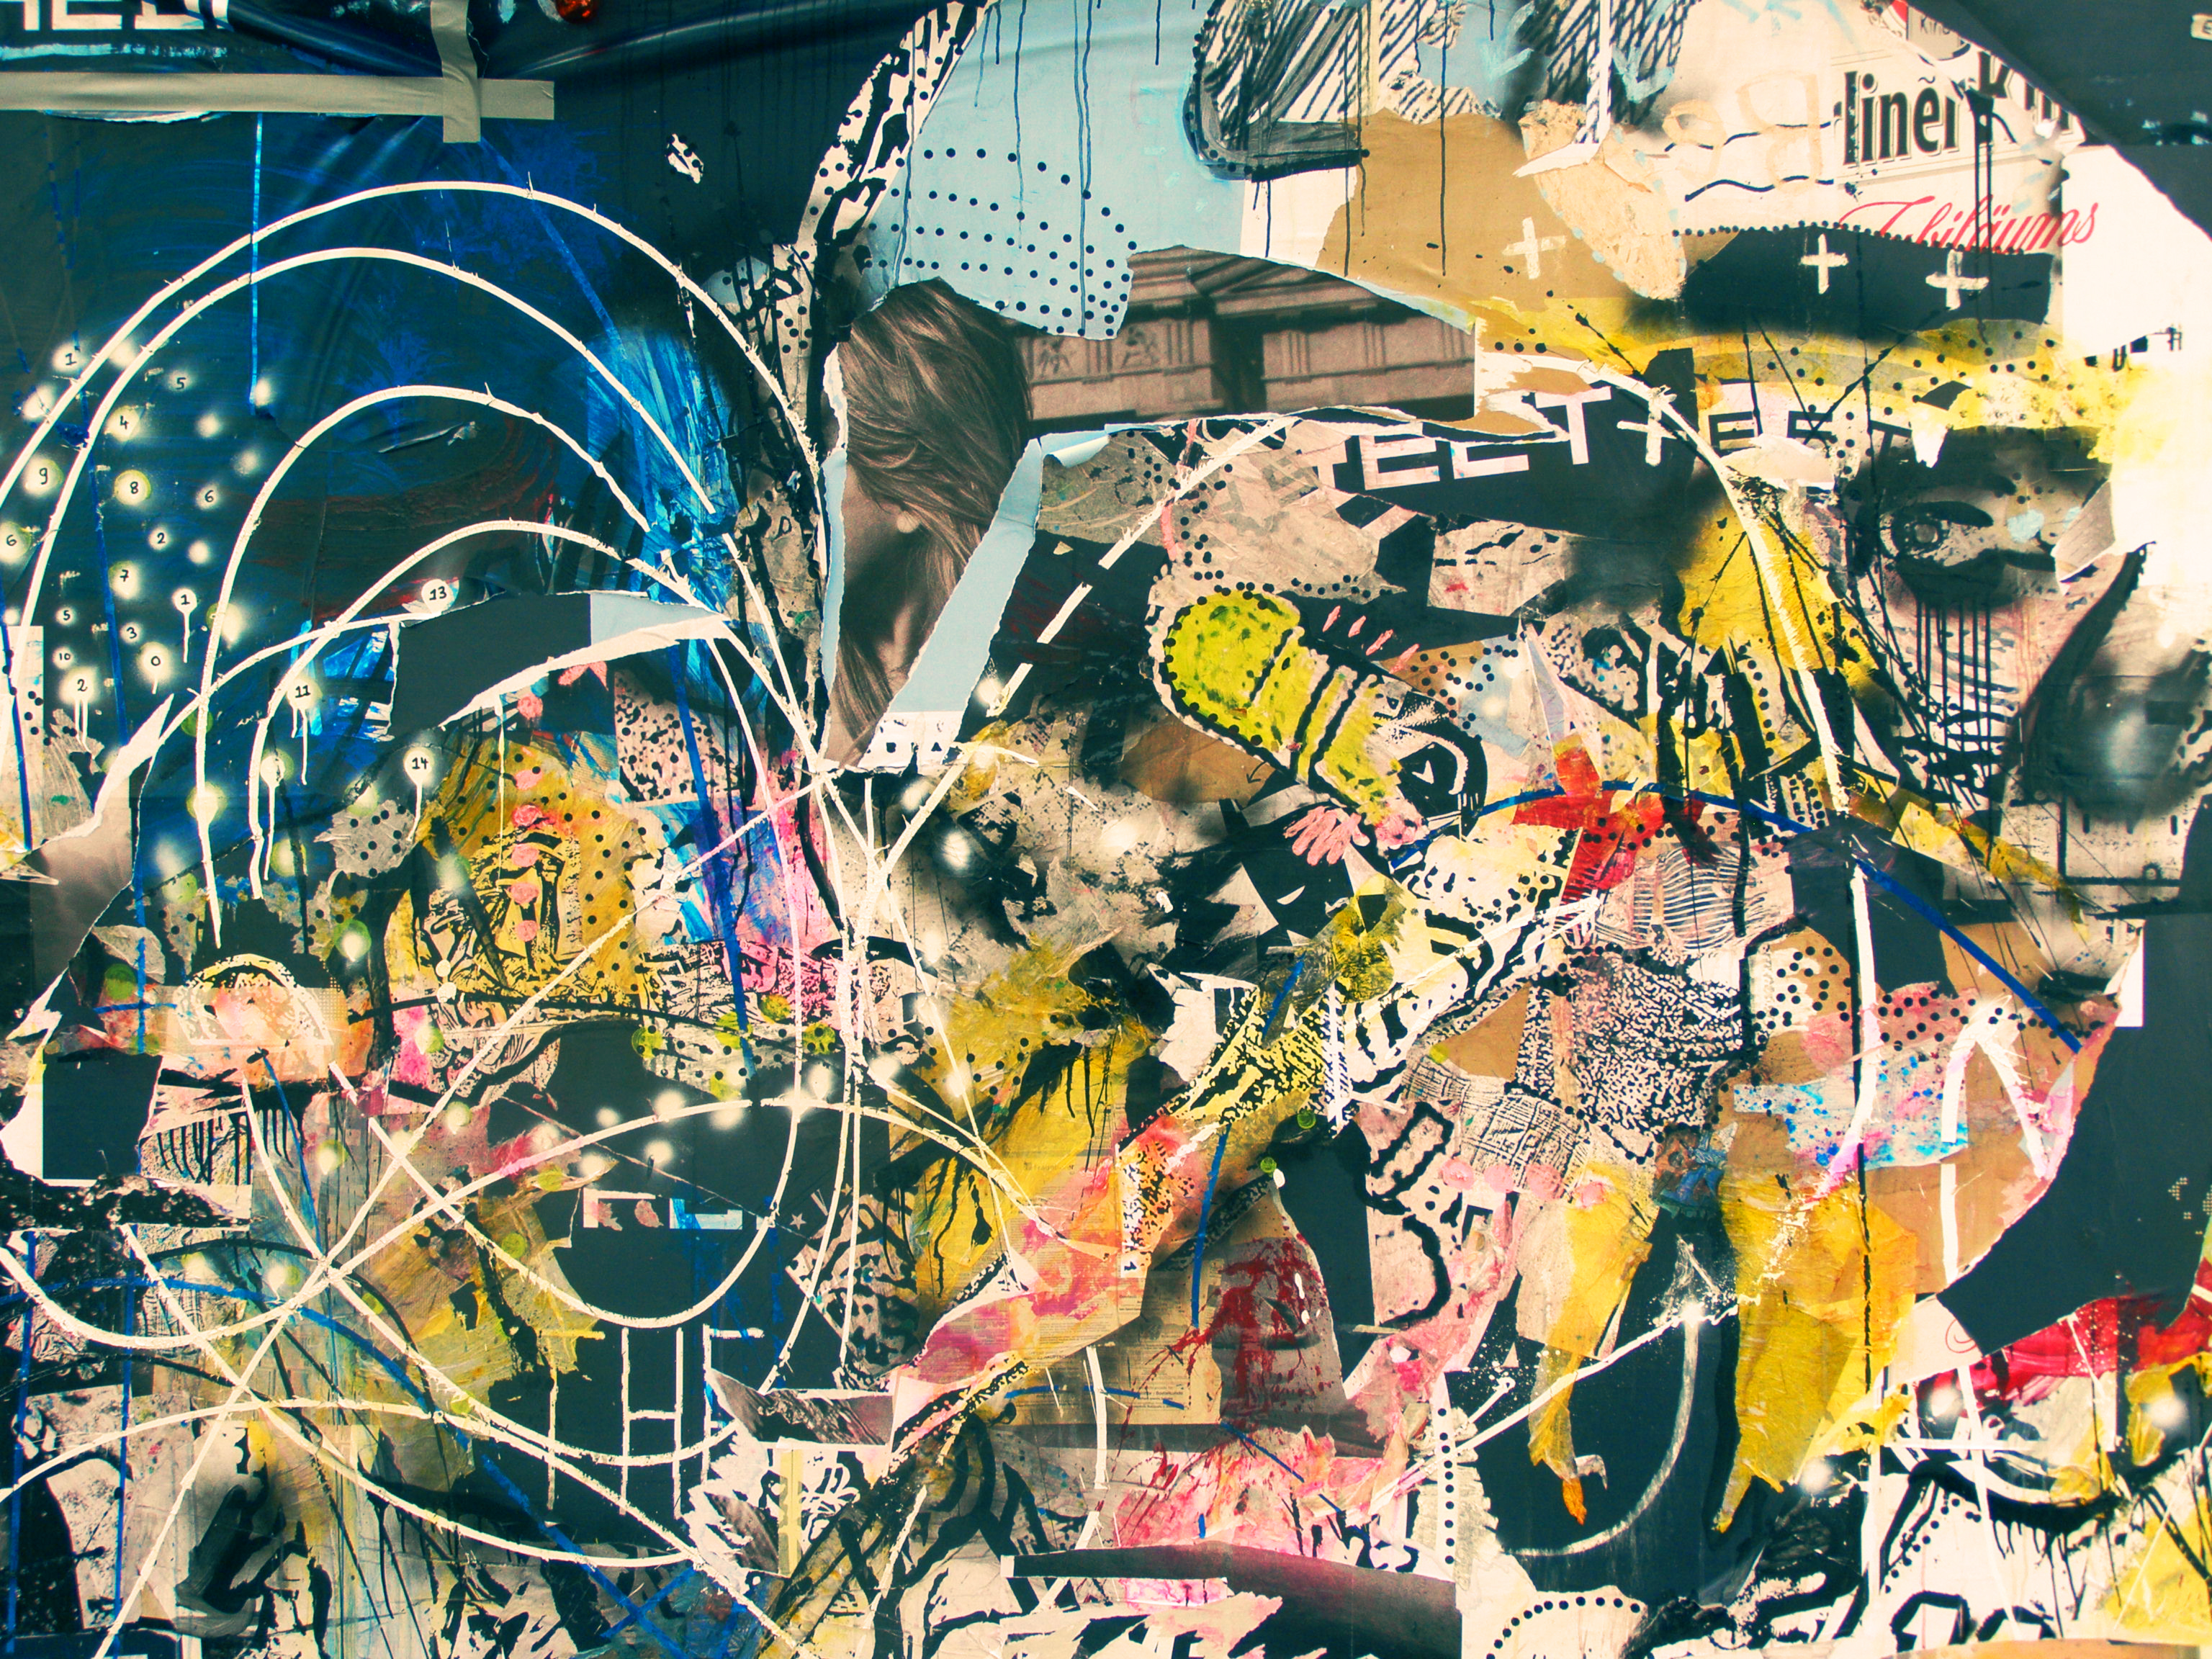 Abstract Graffiti Wall